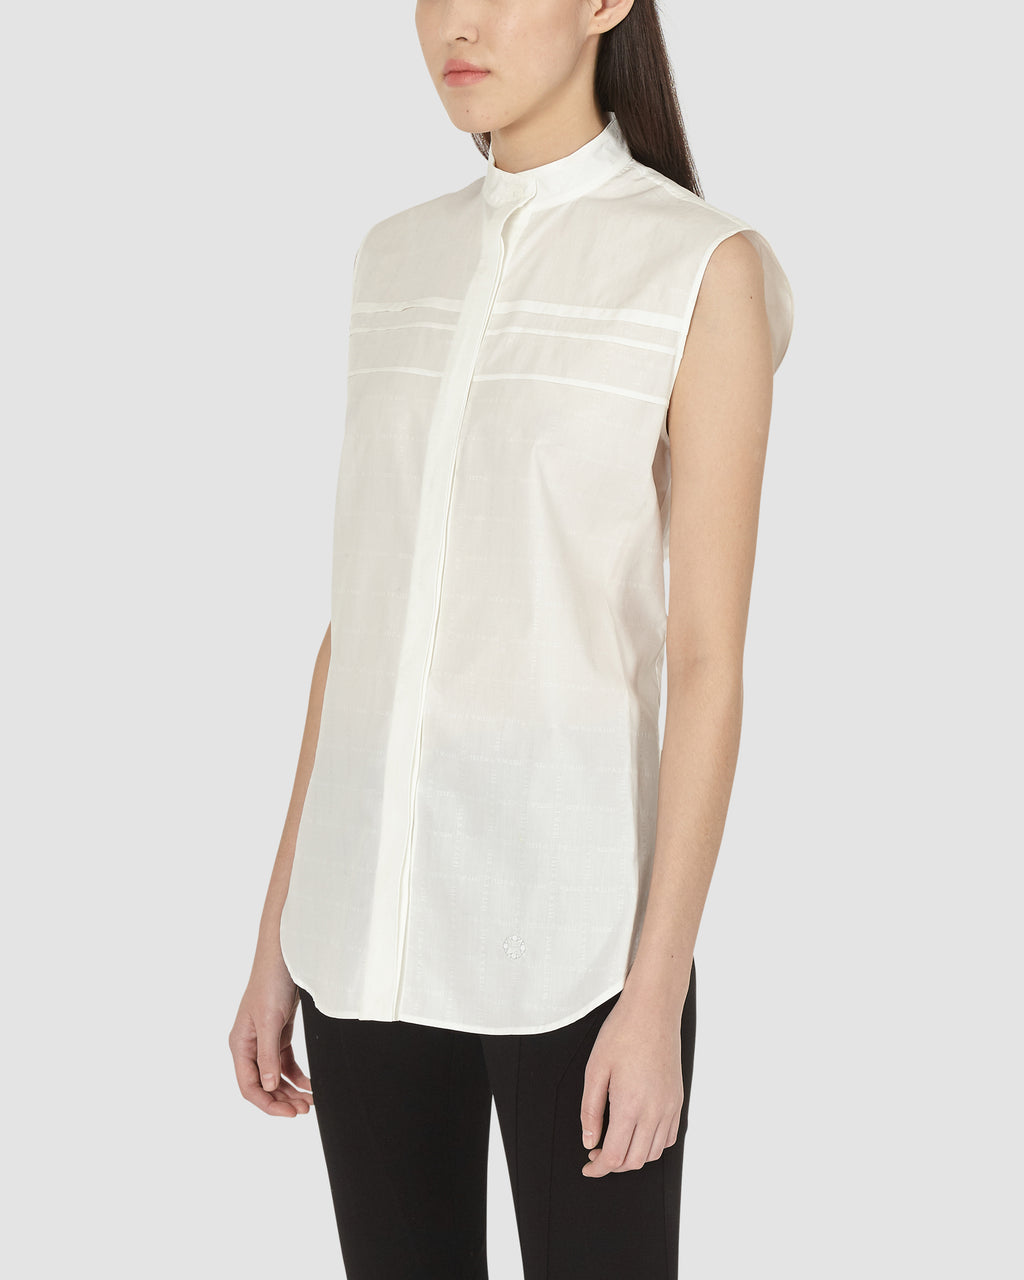 1017 ALYX 9SM | SMOCKED KIM BLOUSE | Top | Google Shopping, S20, S20EXSH, TOPS & SHIRTS, WHITE, Woman, WOMEN